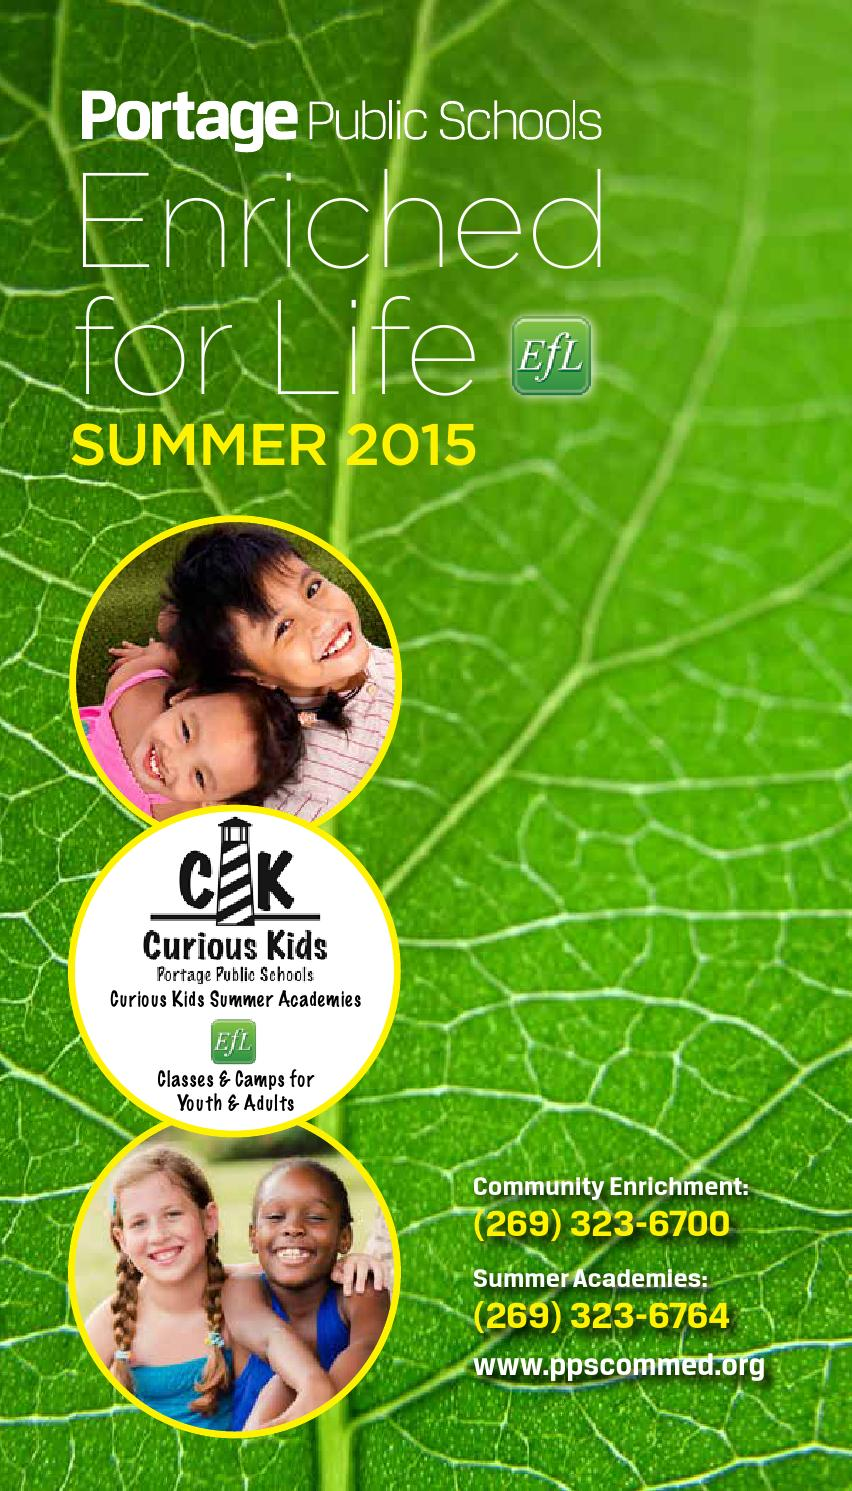 Pps Efl Amp Curious Kids Catalog Summer 2015 By Portage